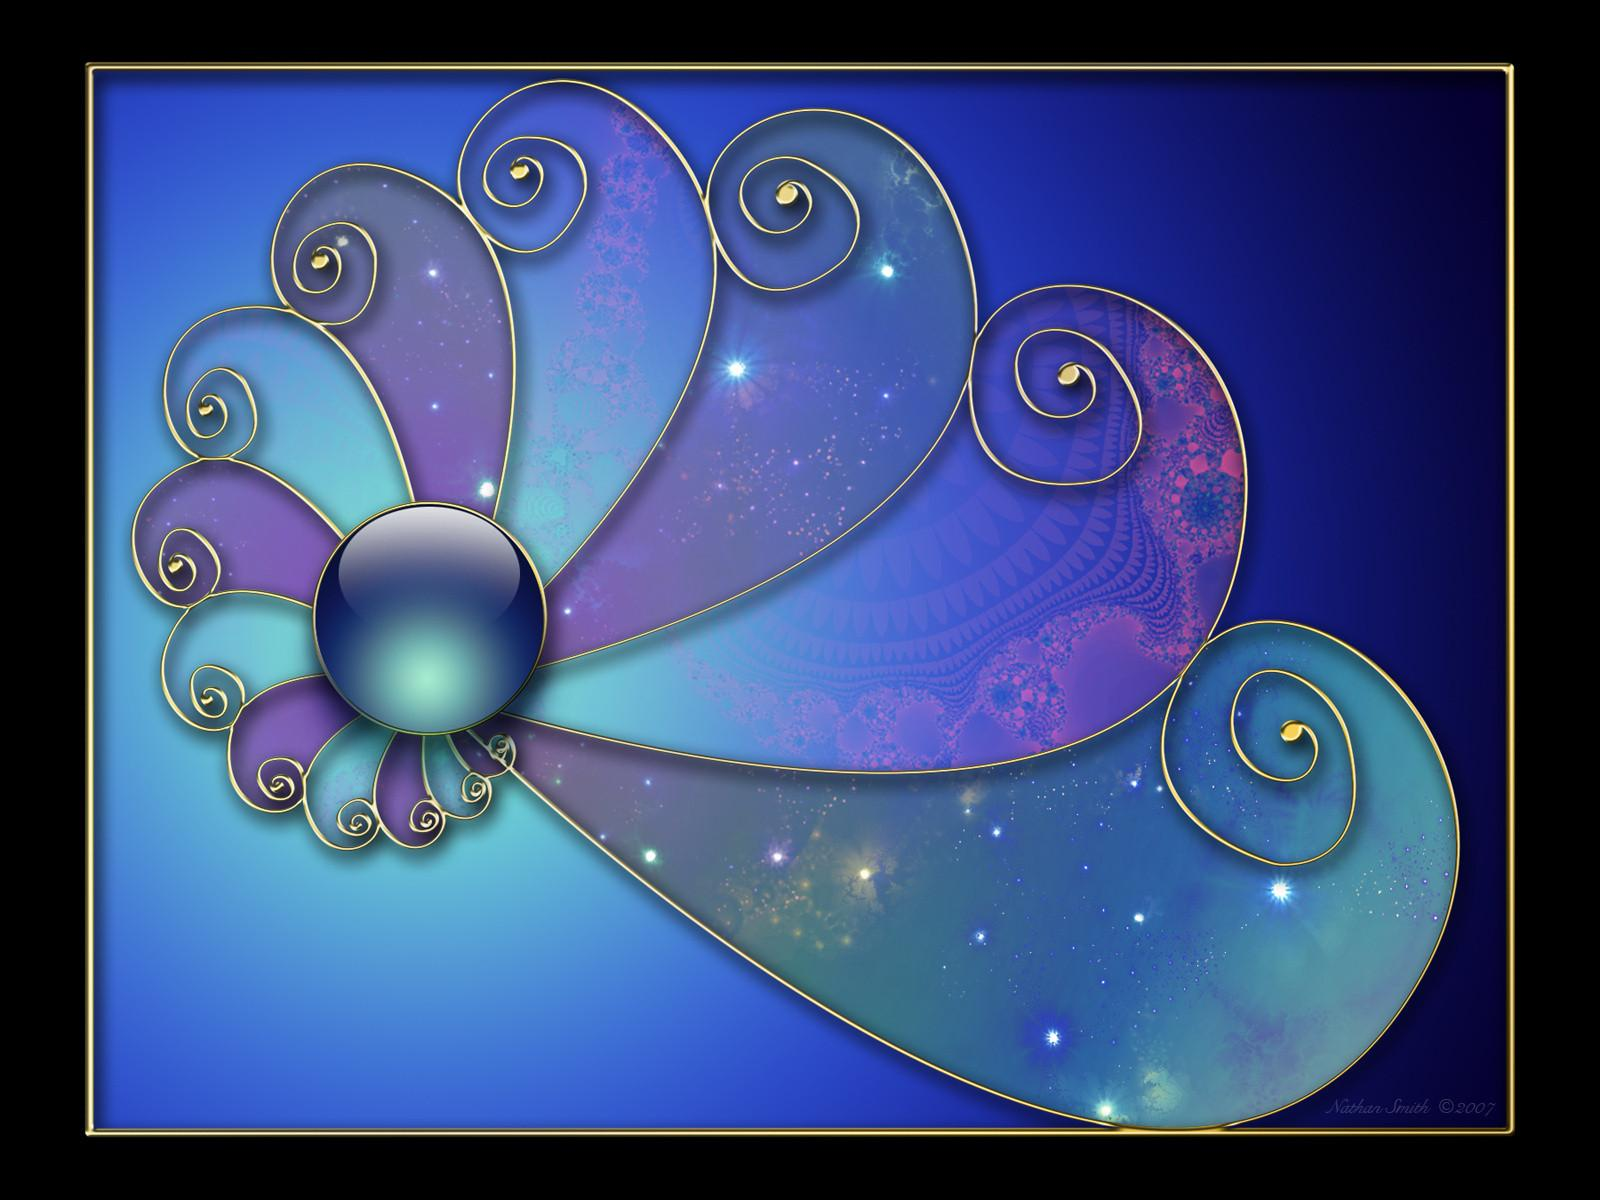 Fractal Art Wallpapers - Photo 1 of 43 | phombo.com